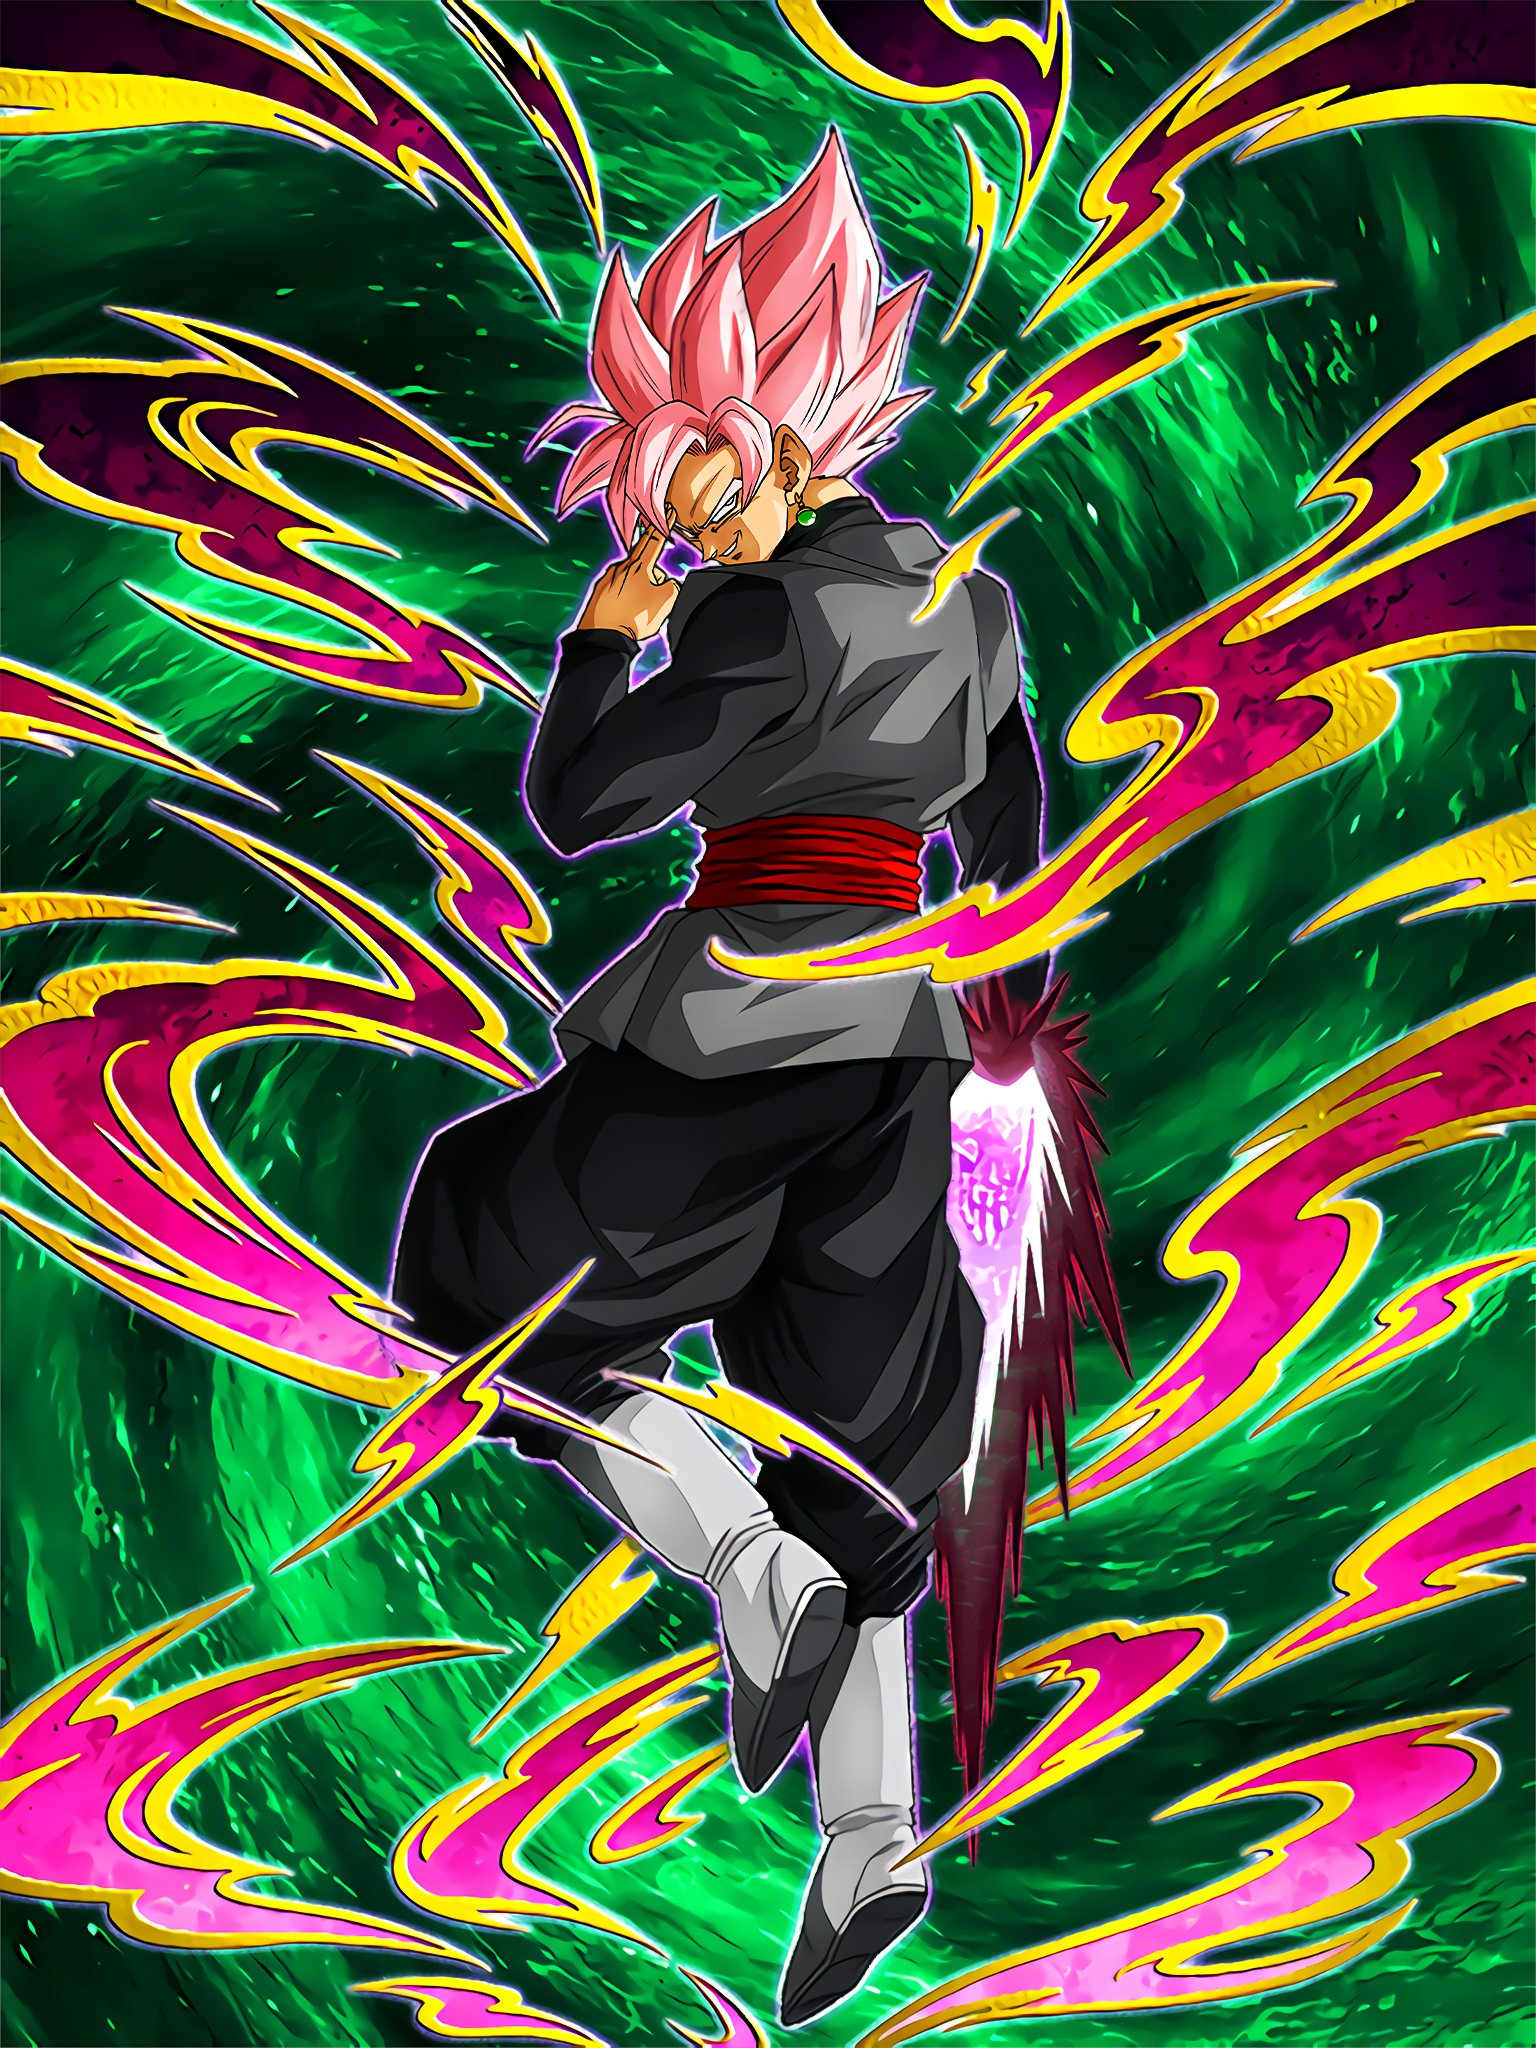 Desire for New Power Goku Black (Super Saiyan Rosé)